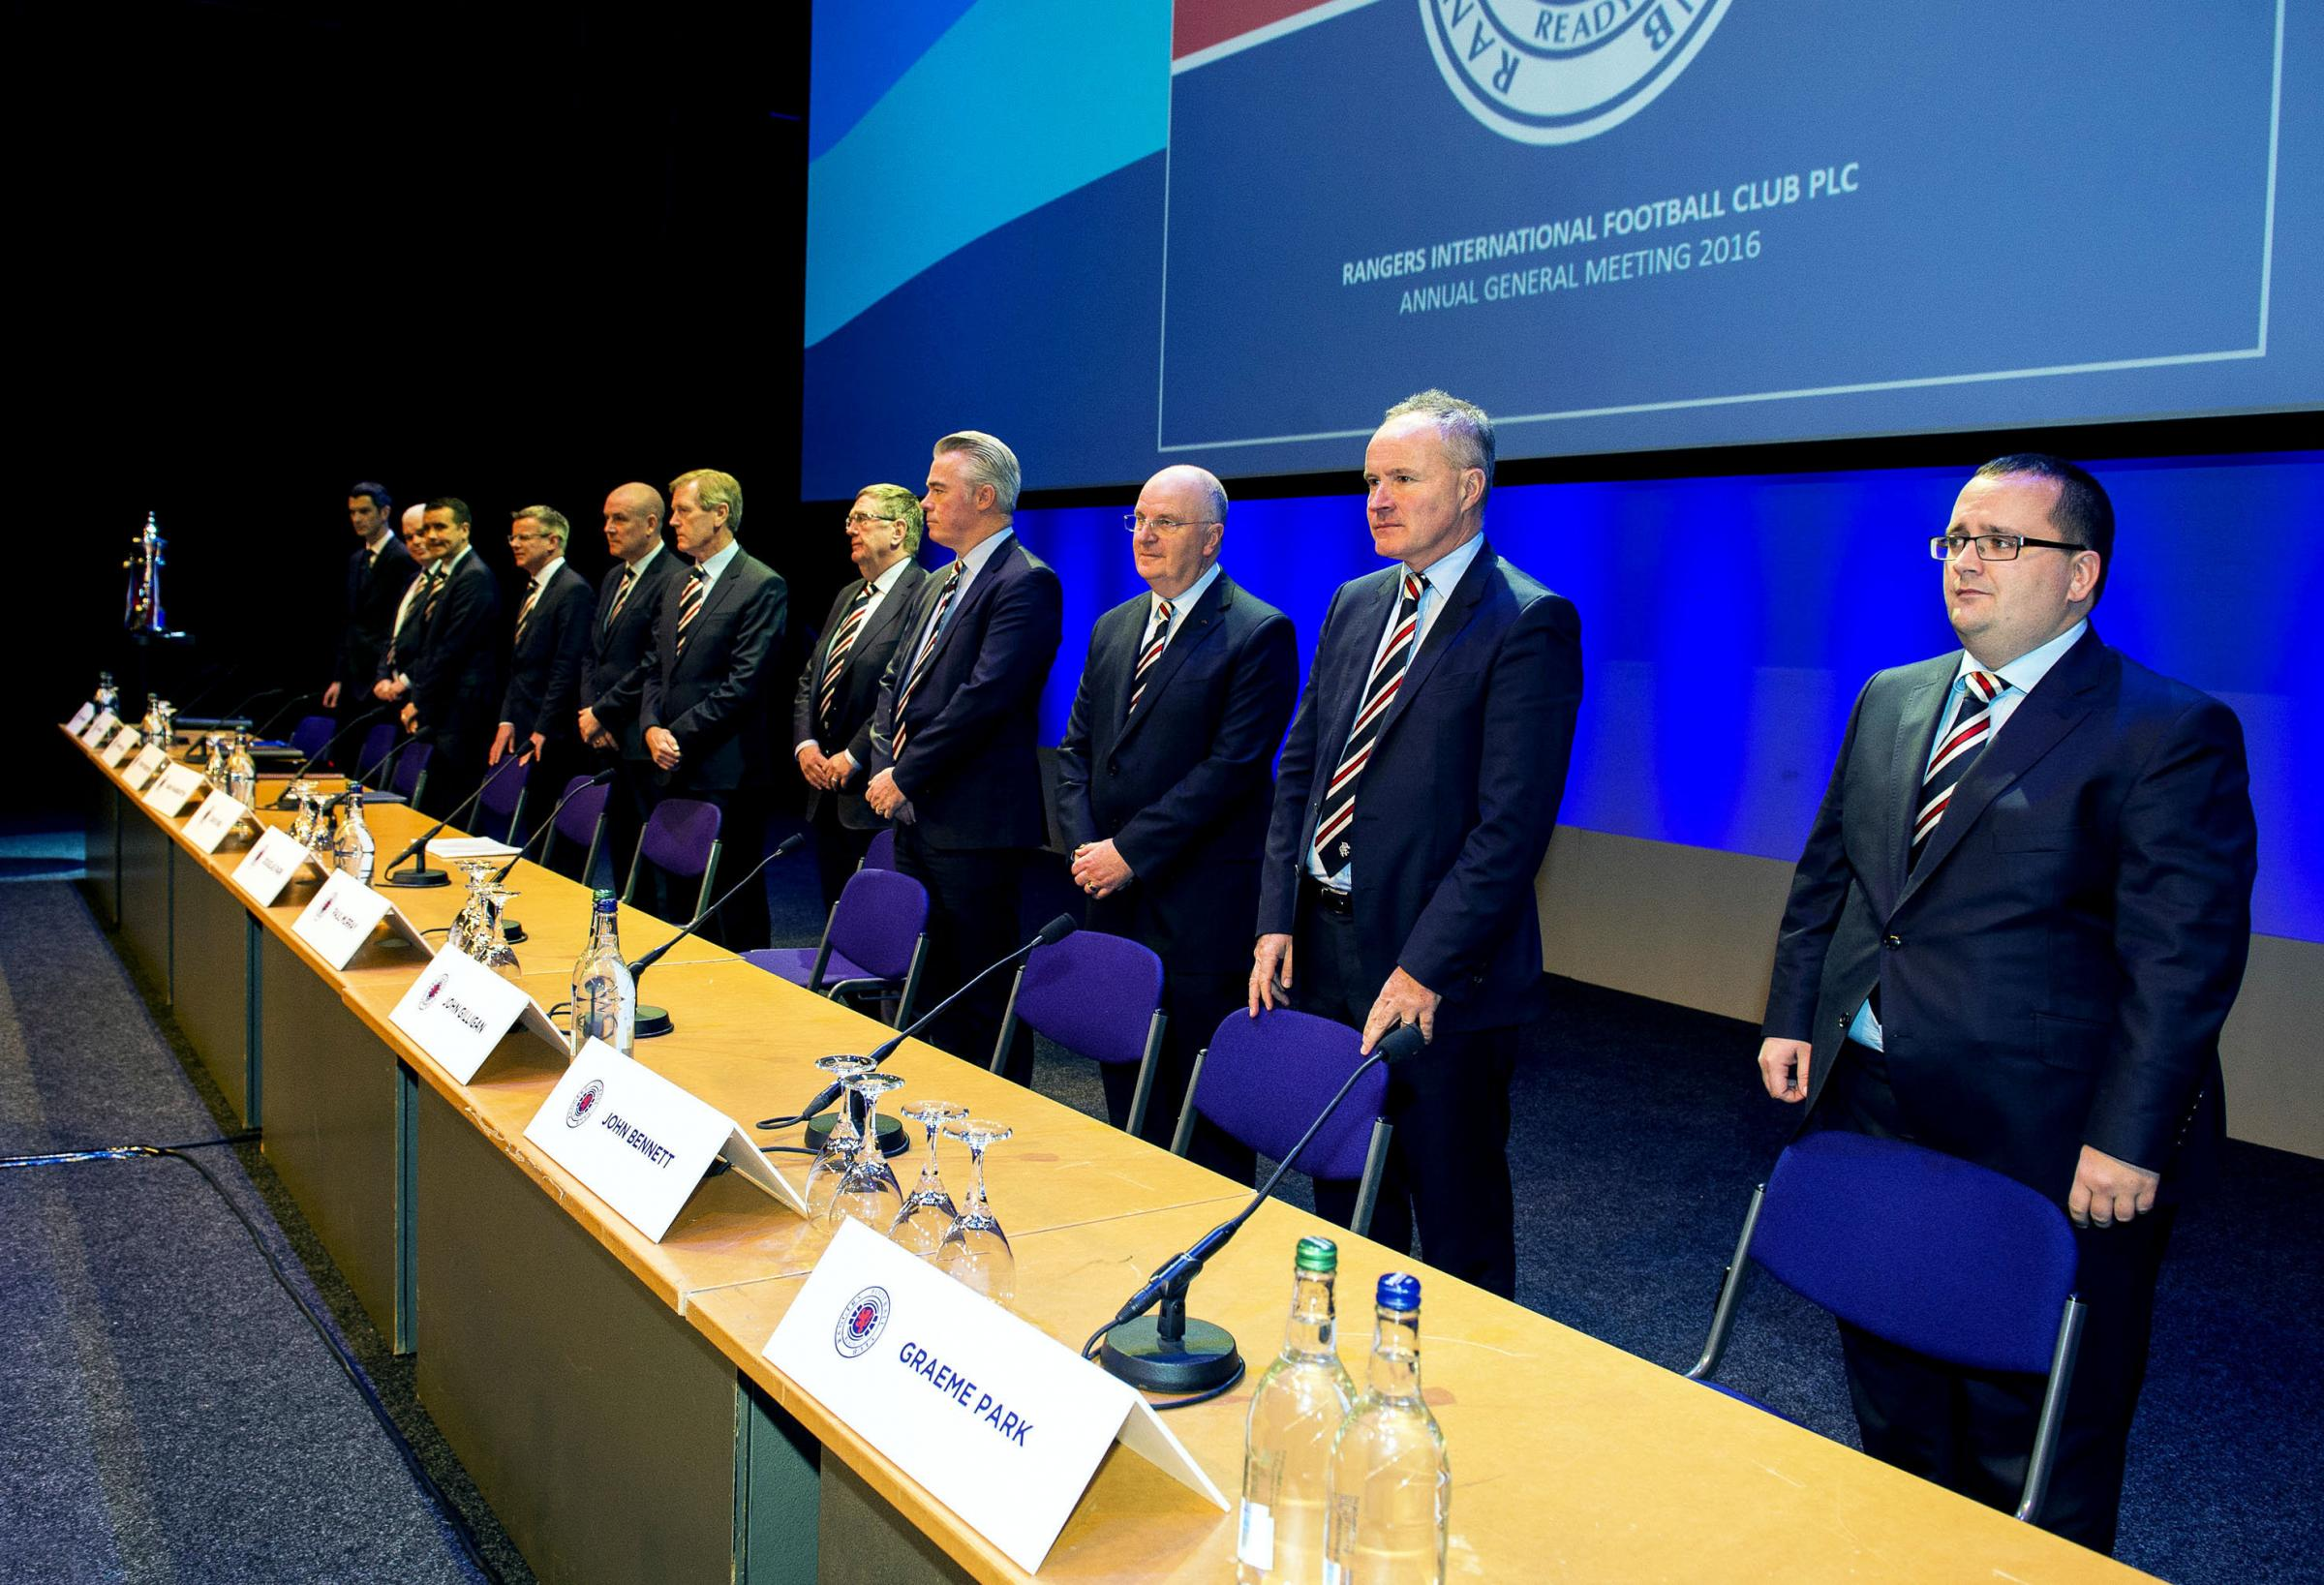 25/11/16 . CLYDE AUDITORIUM - GLASGOW . (L-R) Rangers directors Greig McKnight, James Blair, Andrew Dickson, Stewart Robertson, Mark Warburton, Dave King, Douglas Park, Paul Murray, John Gilligan, John Bennett and Graeme Park..